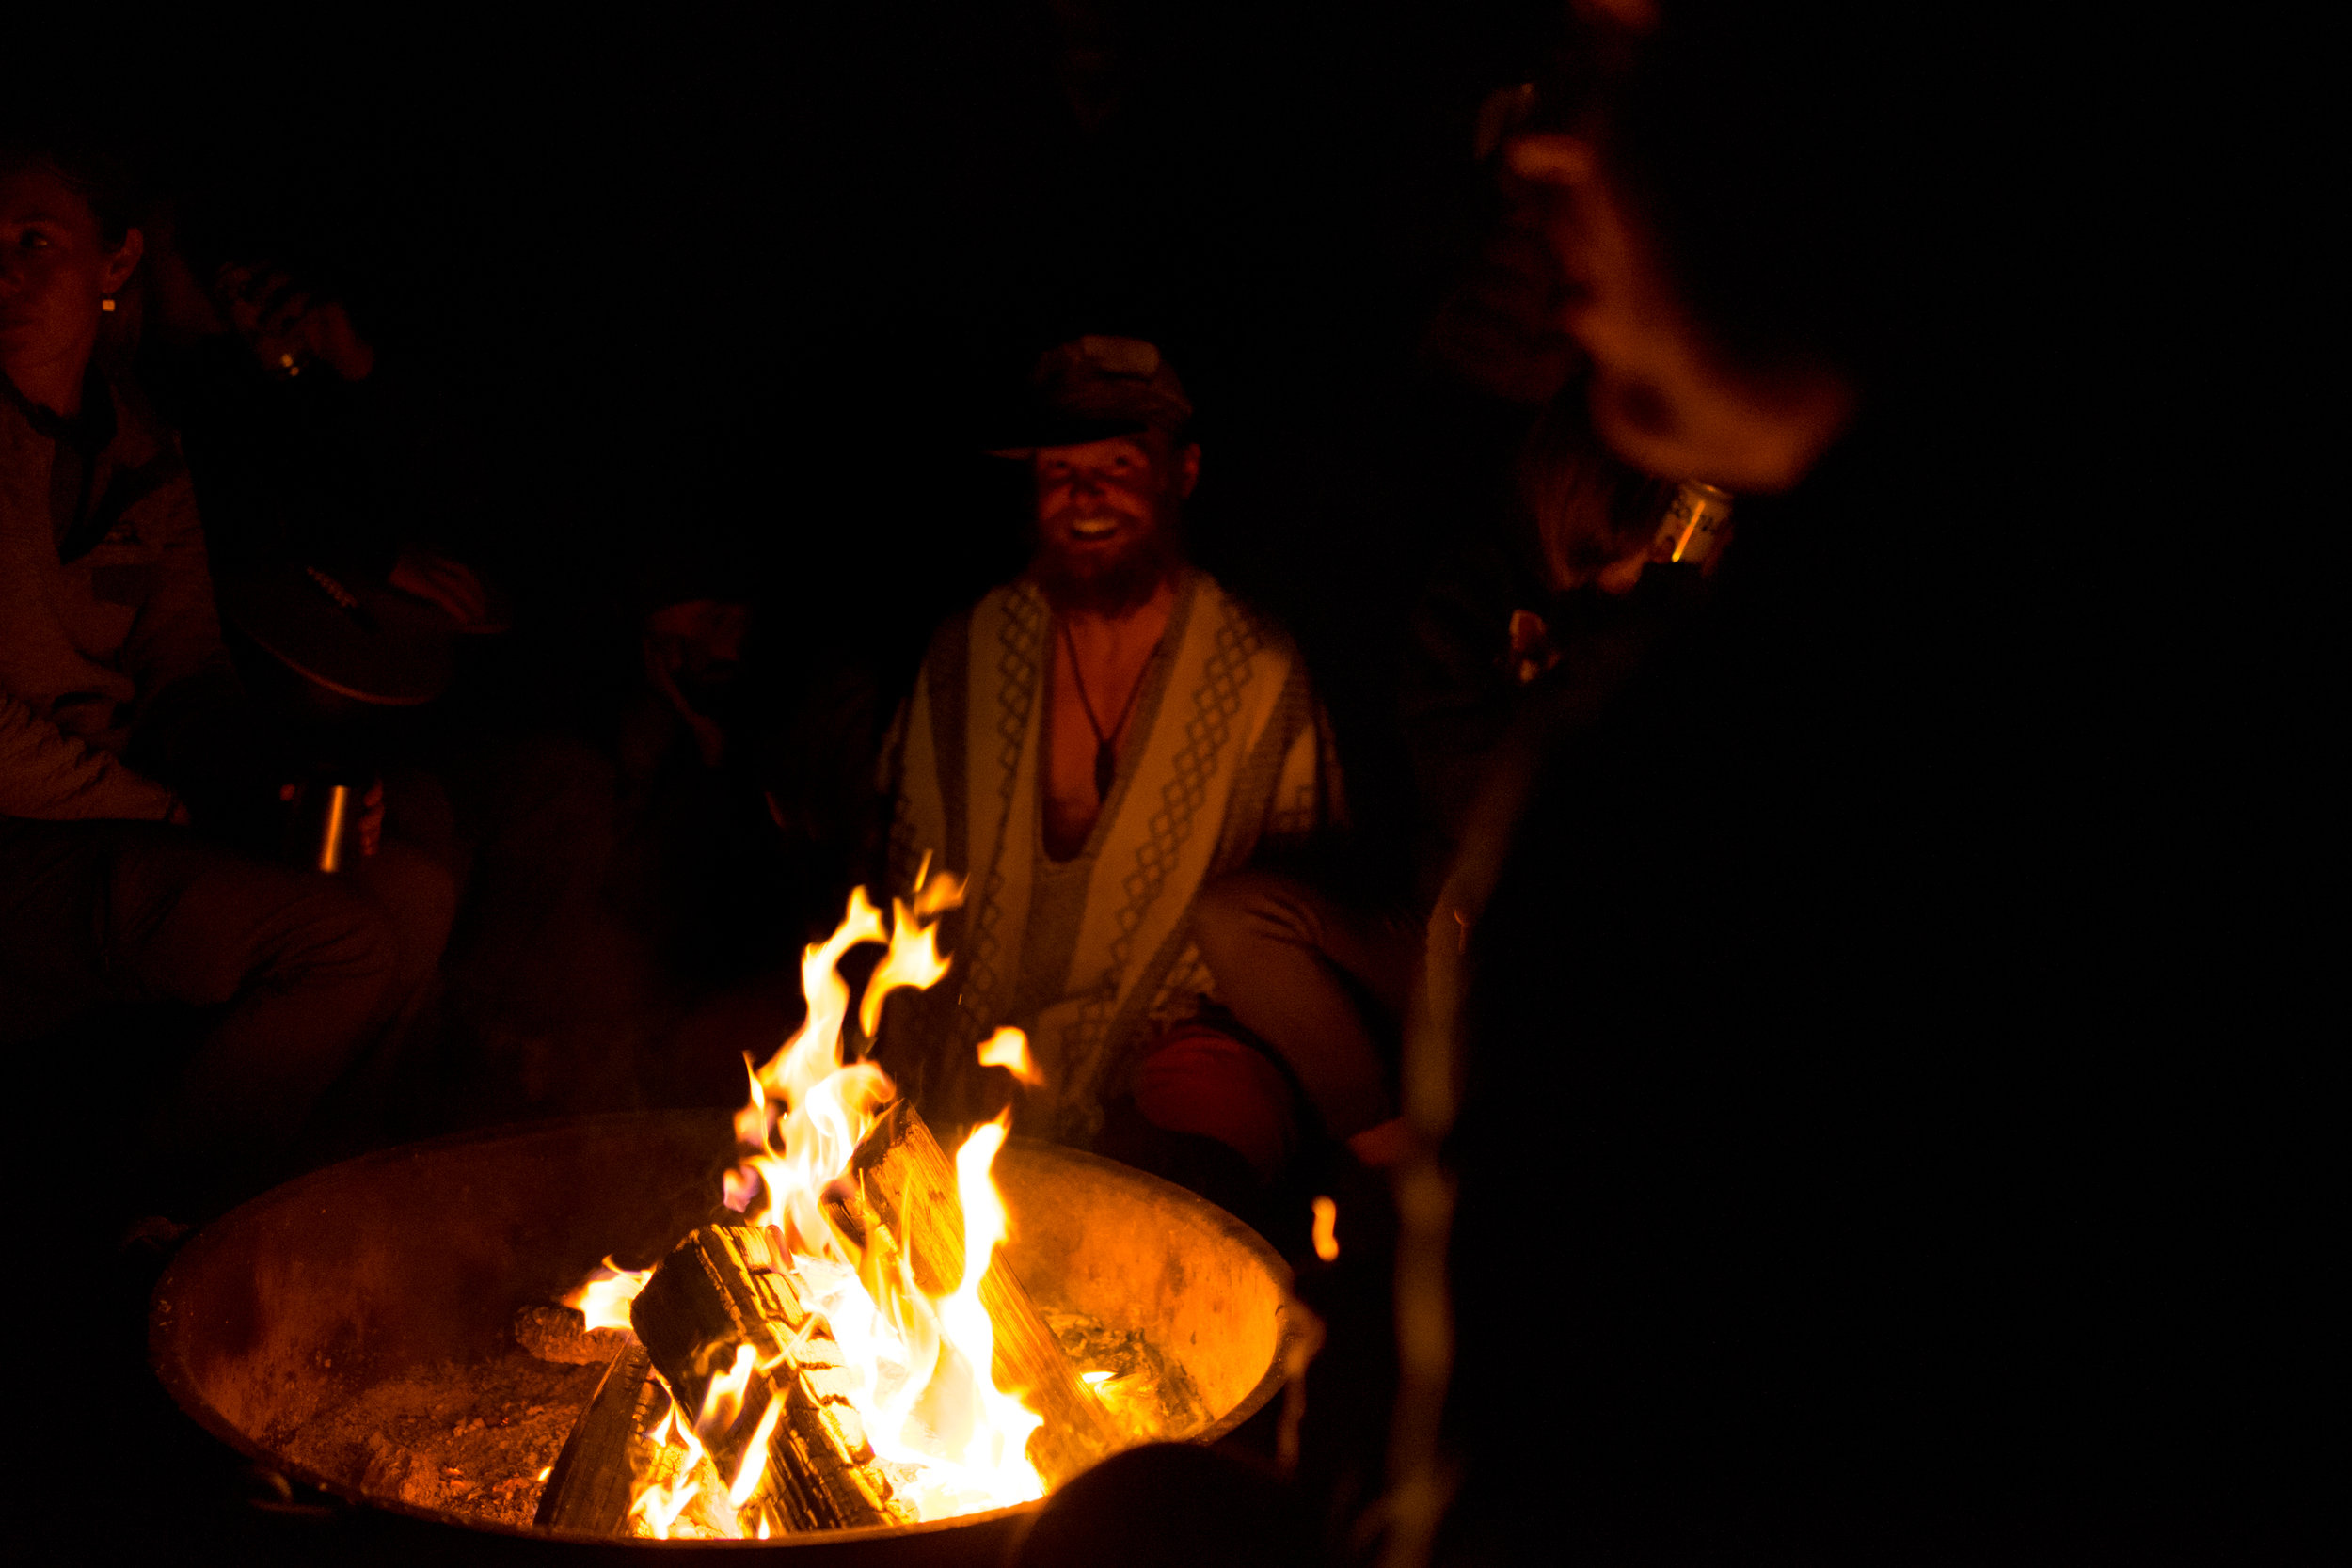 Climbers surround the campfire at Camp #5, where climbers have been coming to share creative and often low-budget group-made dinners, and afterwards drink and socialize into the night.